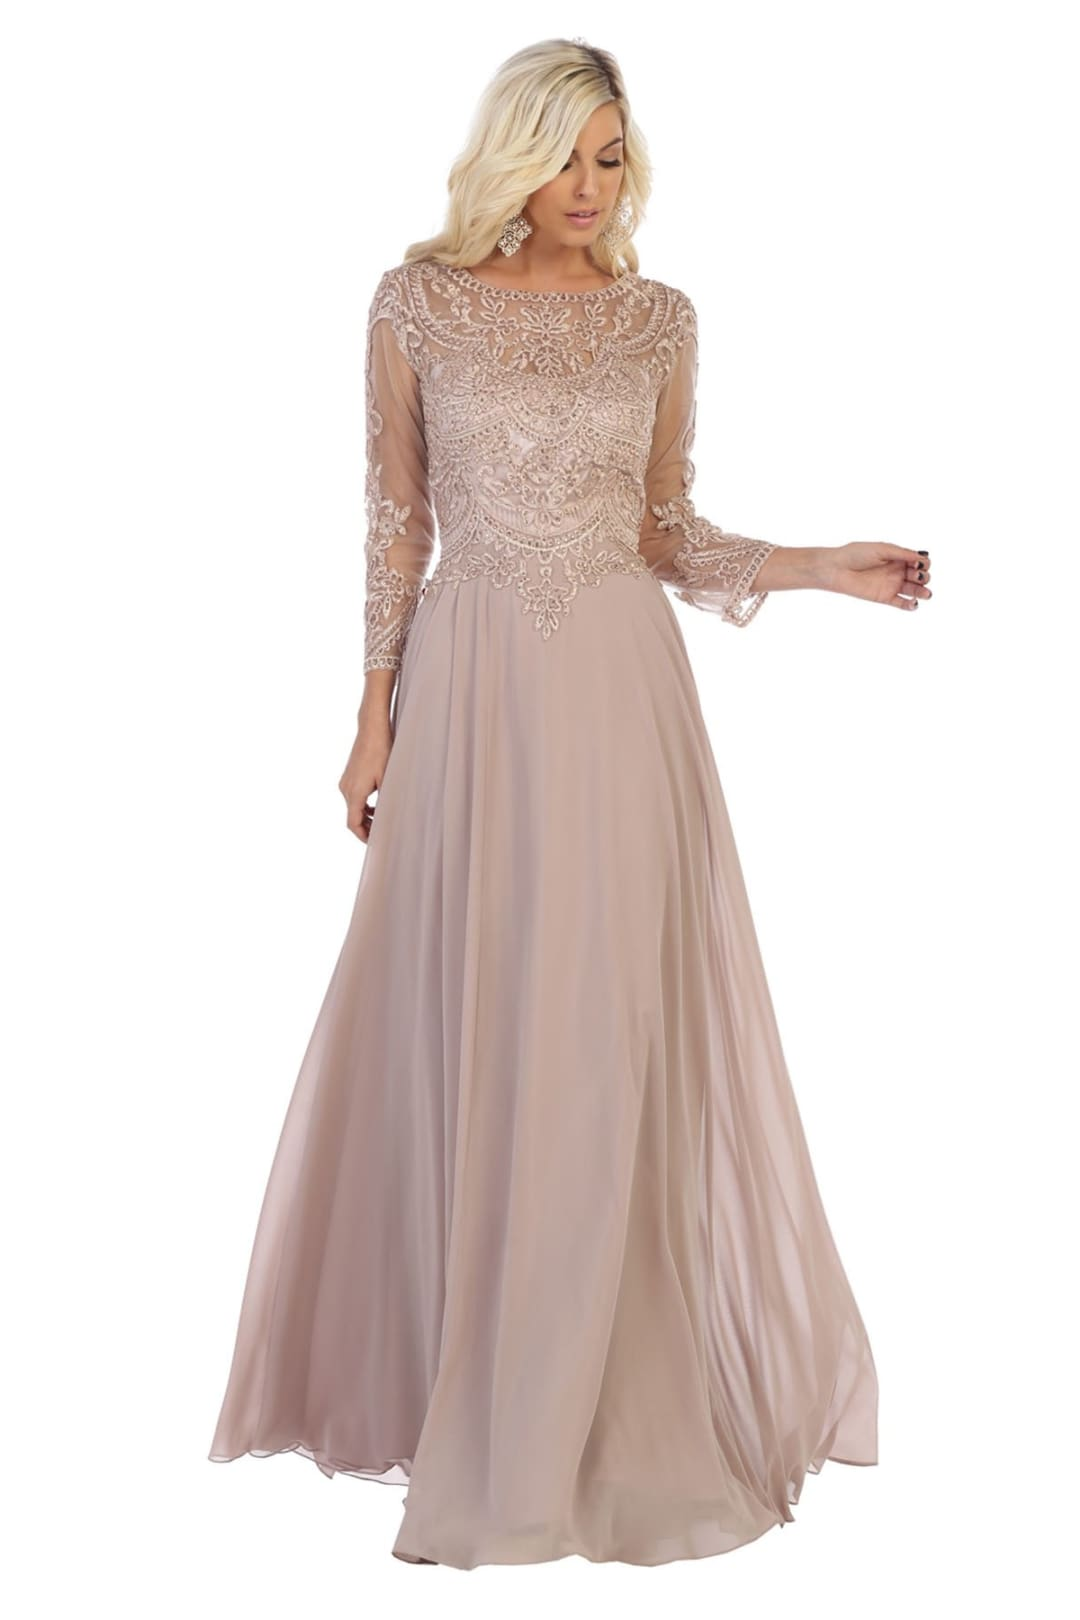 Classy Mother of the Bride Gown - Mocha / 5XL